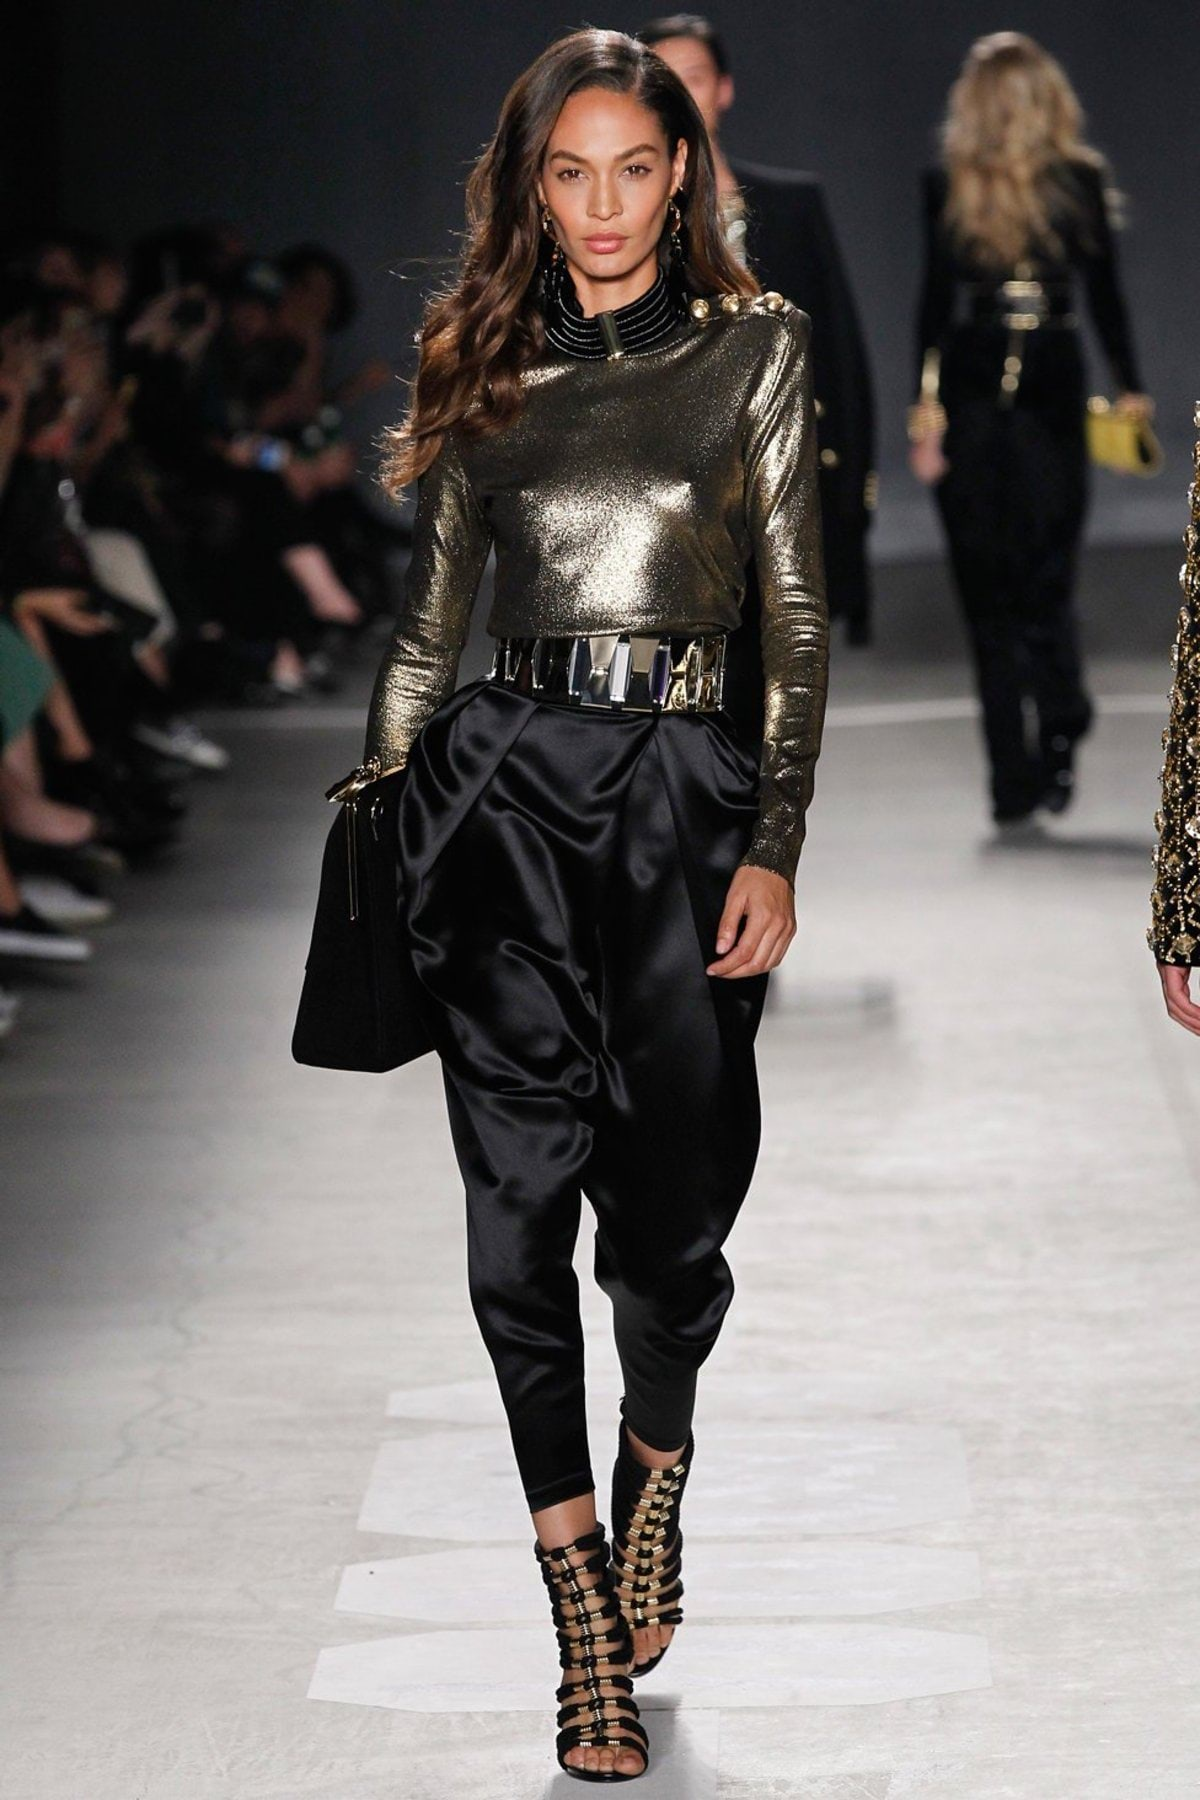 h-and-m-balmain-runway-fall-2016-05 (1)